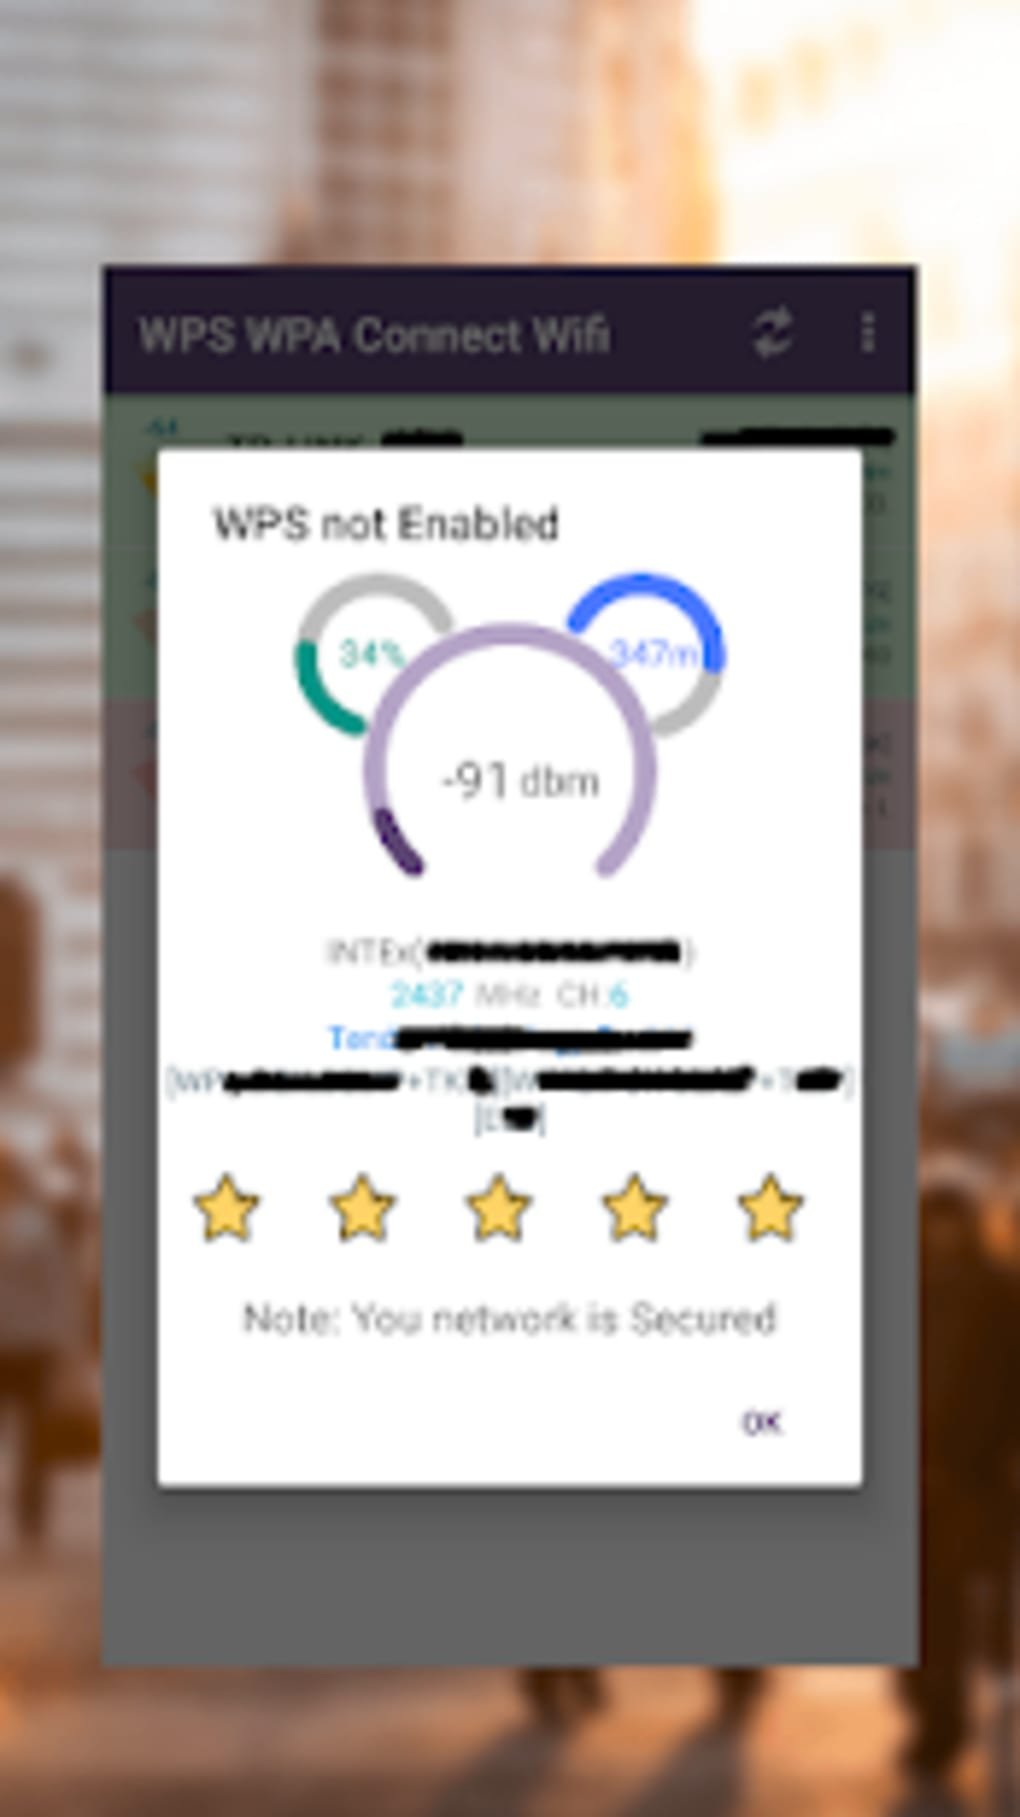 WPS WPA Connect Wifi Pro for Android - Download